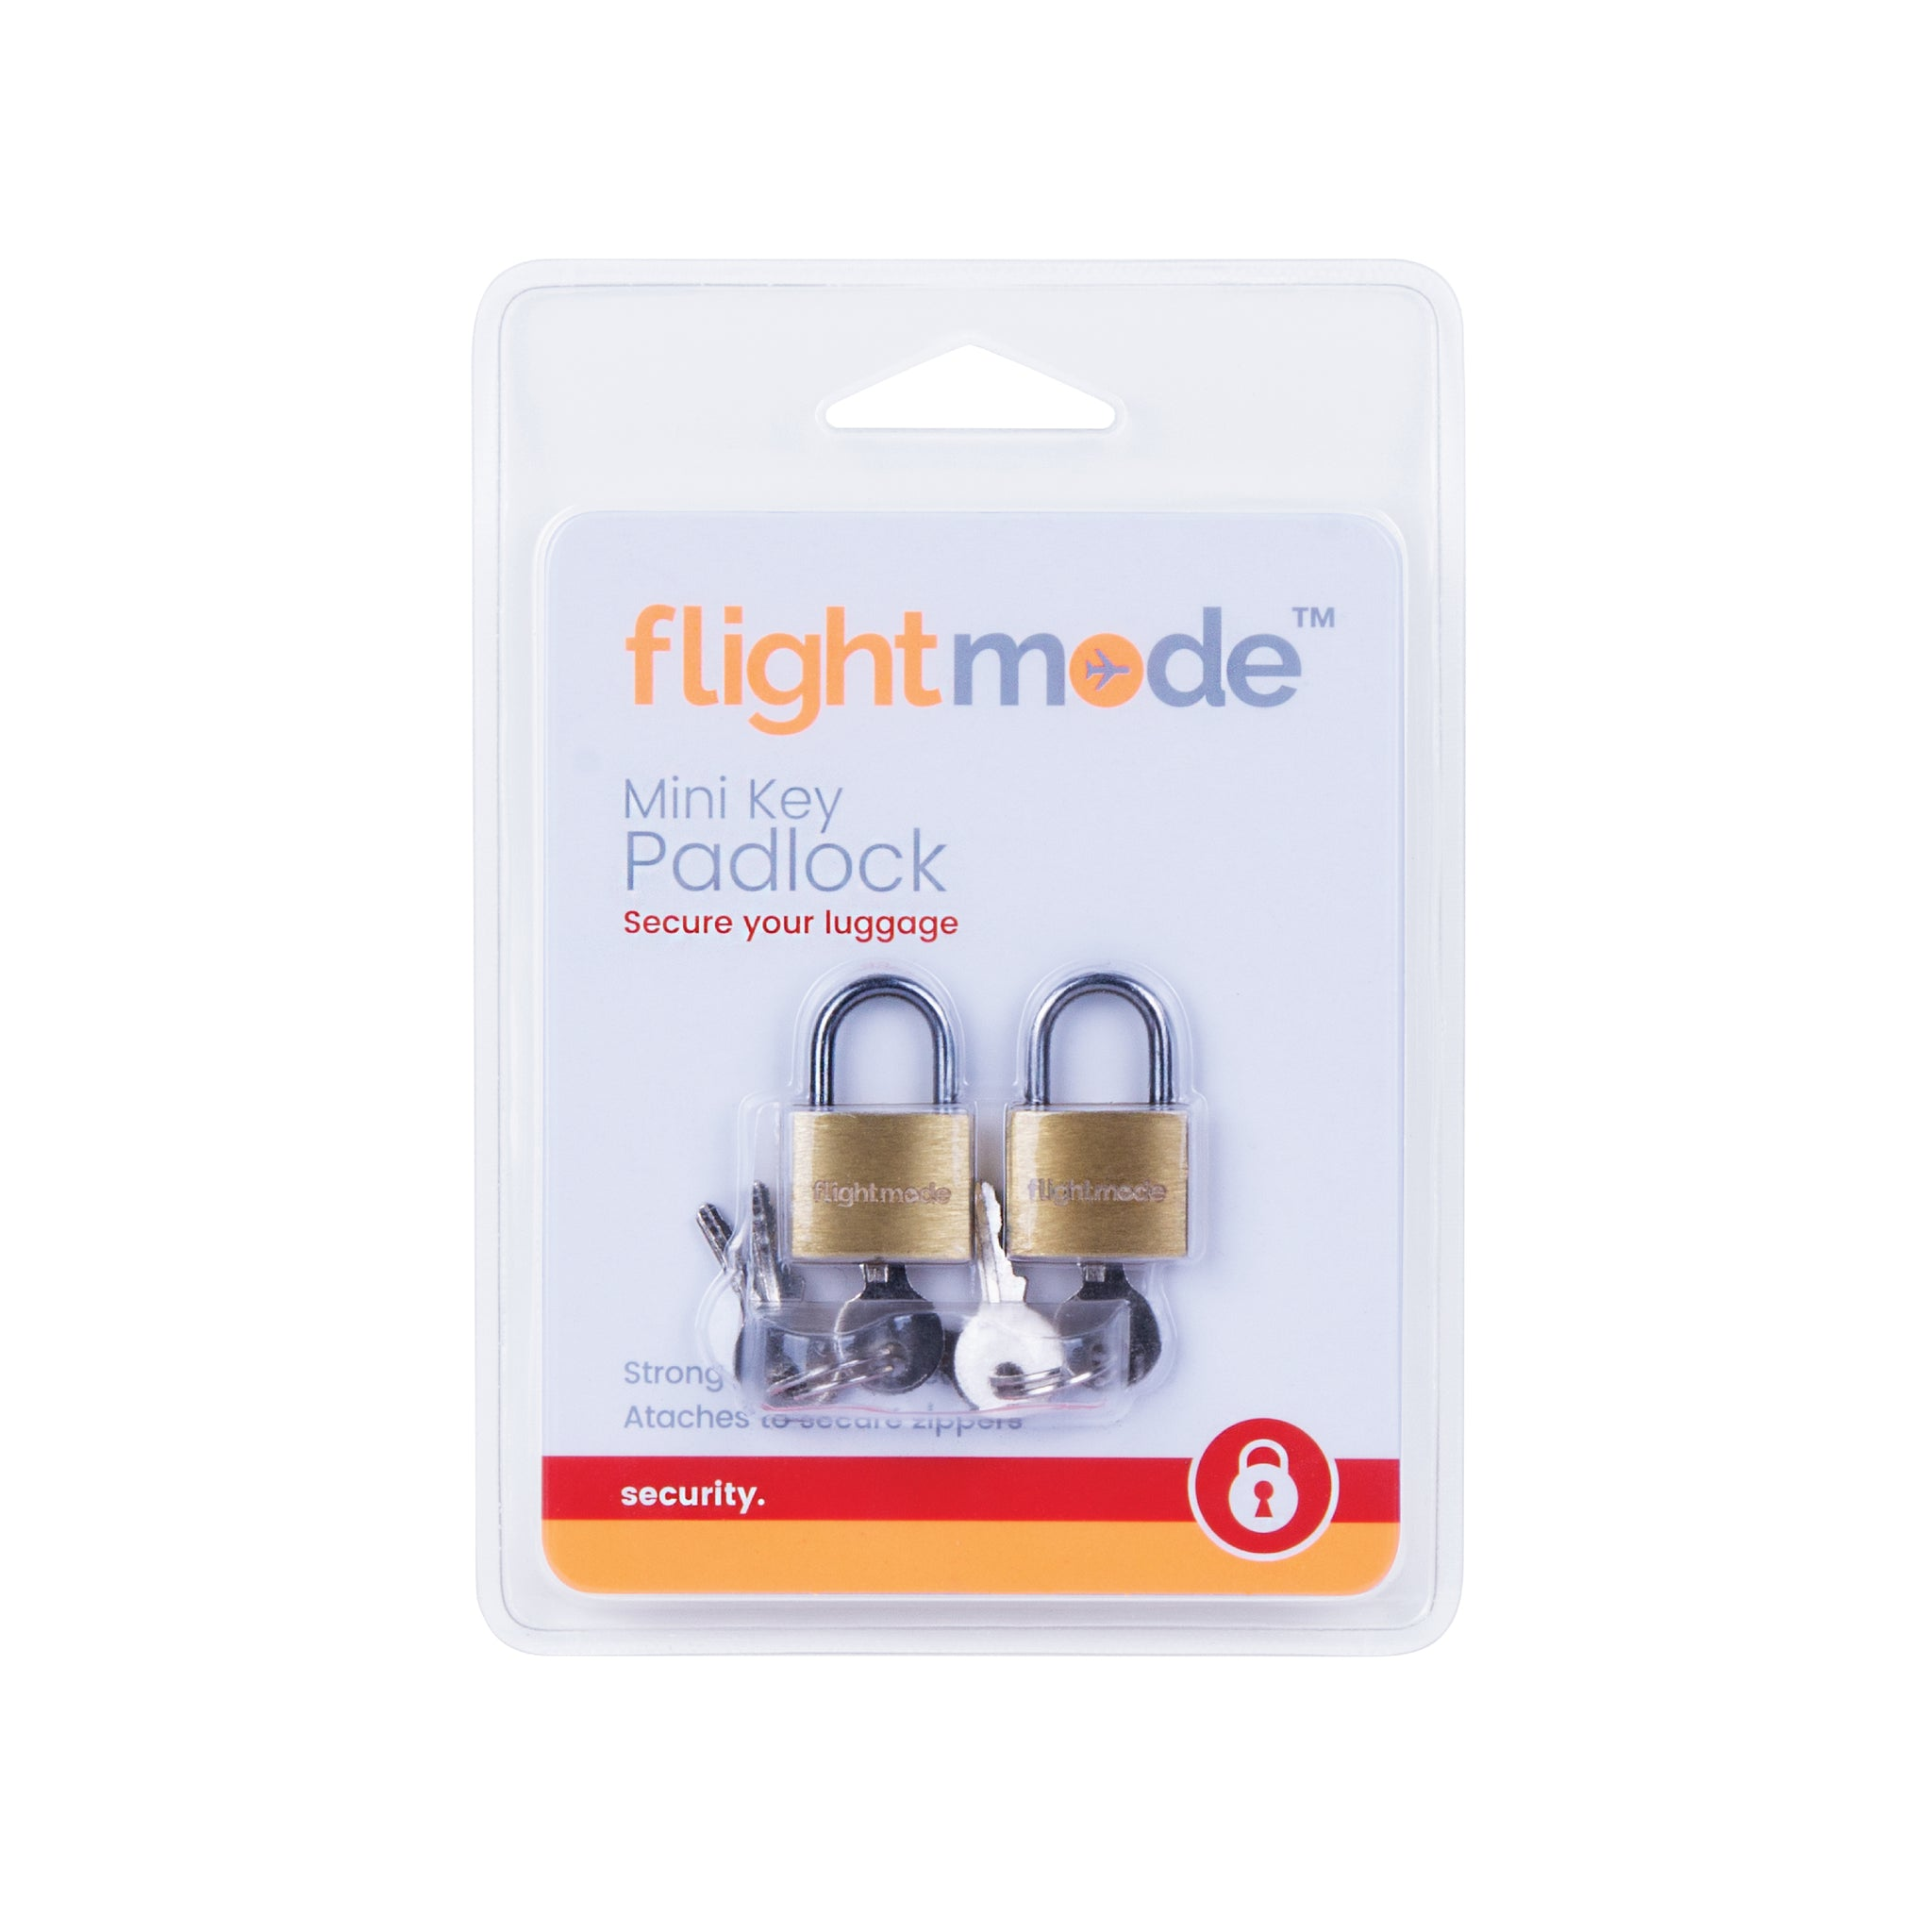 Flightmode Brass Padlock 2 Pack - 20mm brass locks with 3 keys per pack. These locks are strong, durable and secure with a brass body for resistance against rust and corrosion they're ideal for zippered cases, bags, backpacks, lockers and more.